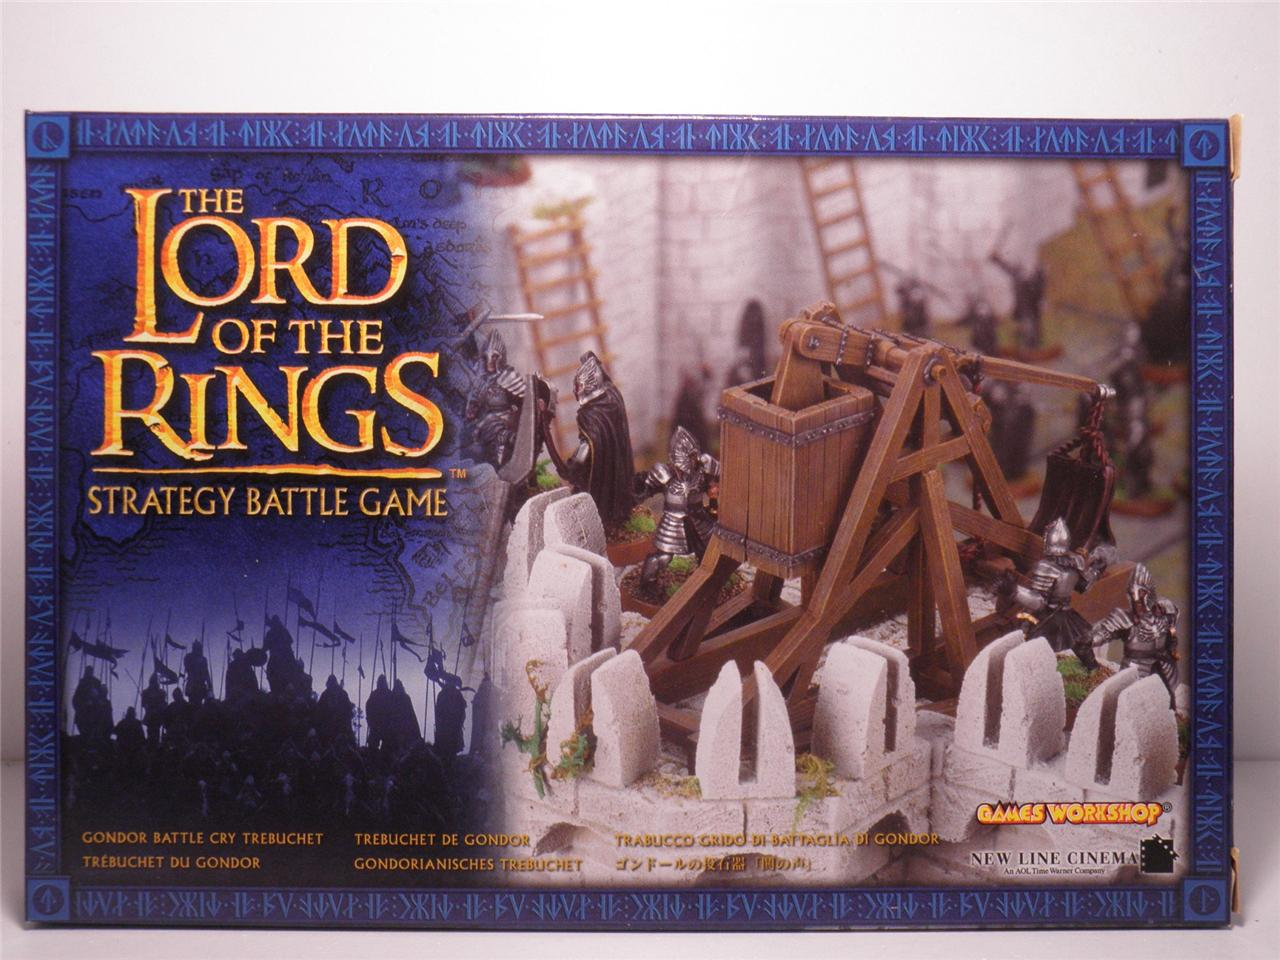 Gondor-Battle-Cry-Trebuchet-Box-Set-Mint-Metal-Model-Sealed-LOTR-The-Hobbit-OOP